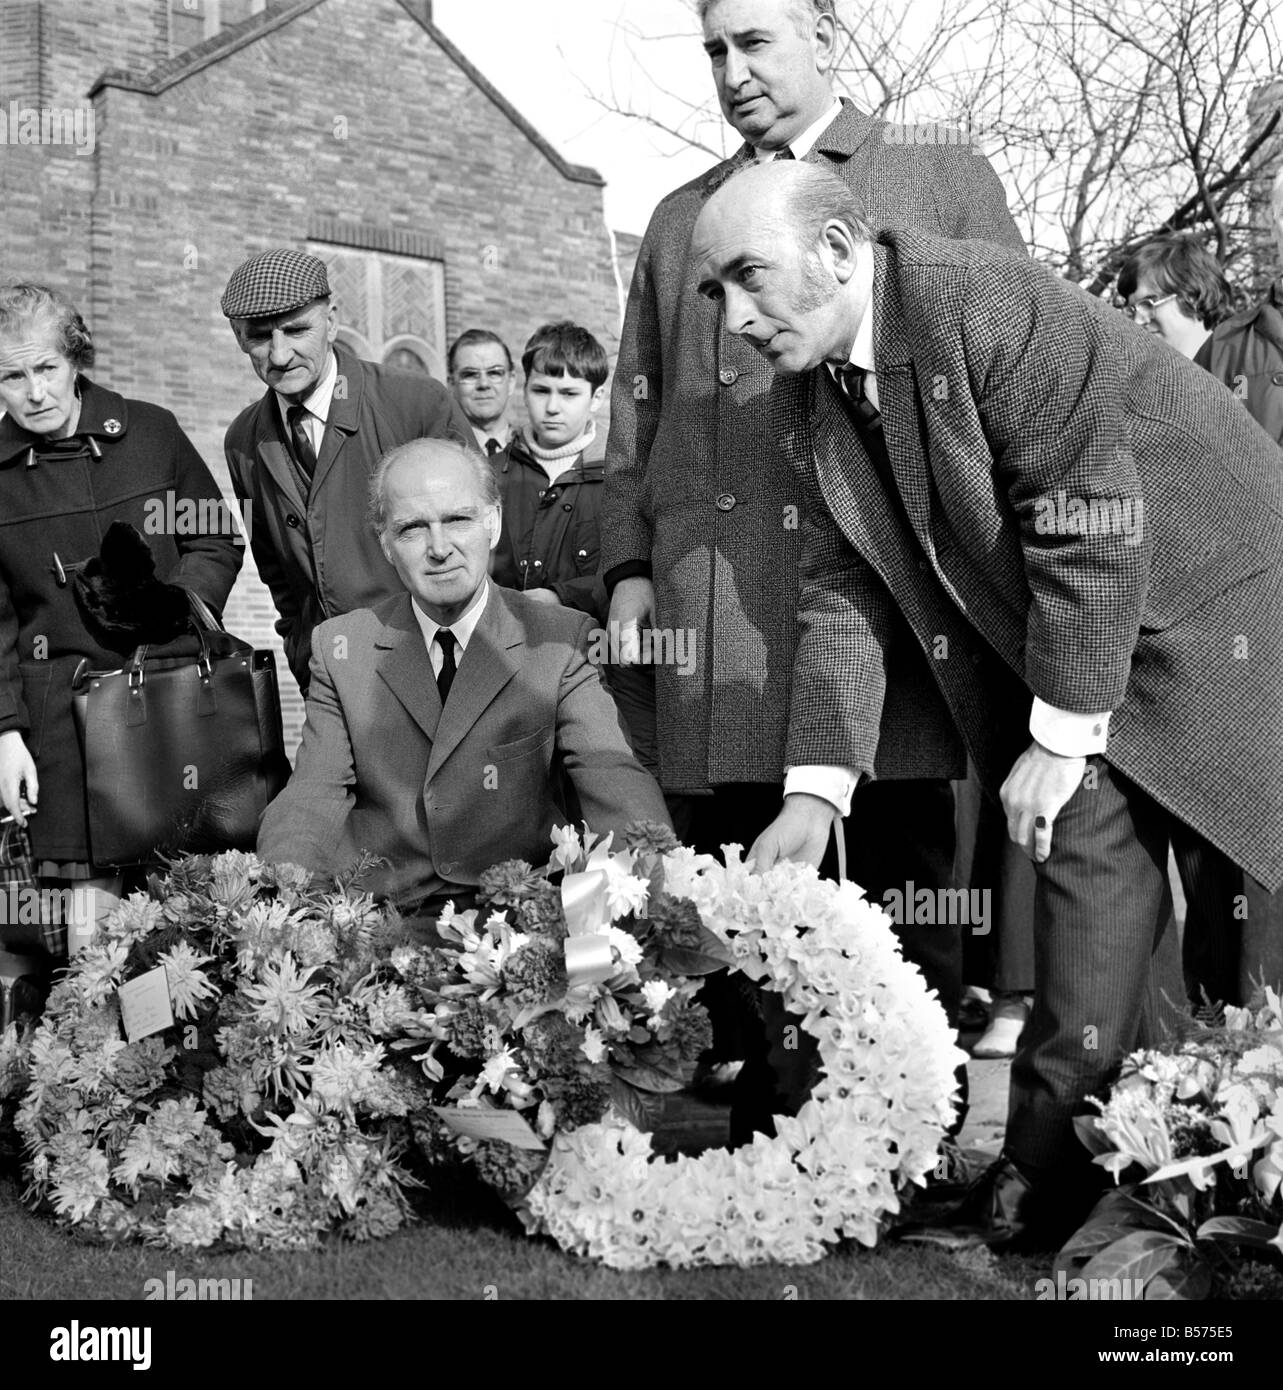 Dambusters Funeral Sgt. Charles E. Franklin. Left to right (placing wreaths on ground) - Townsend, Chalmers and Stock Photo